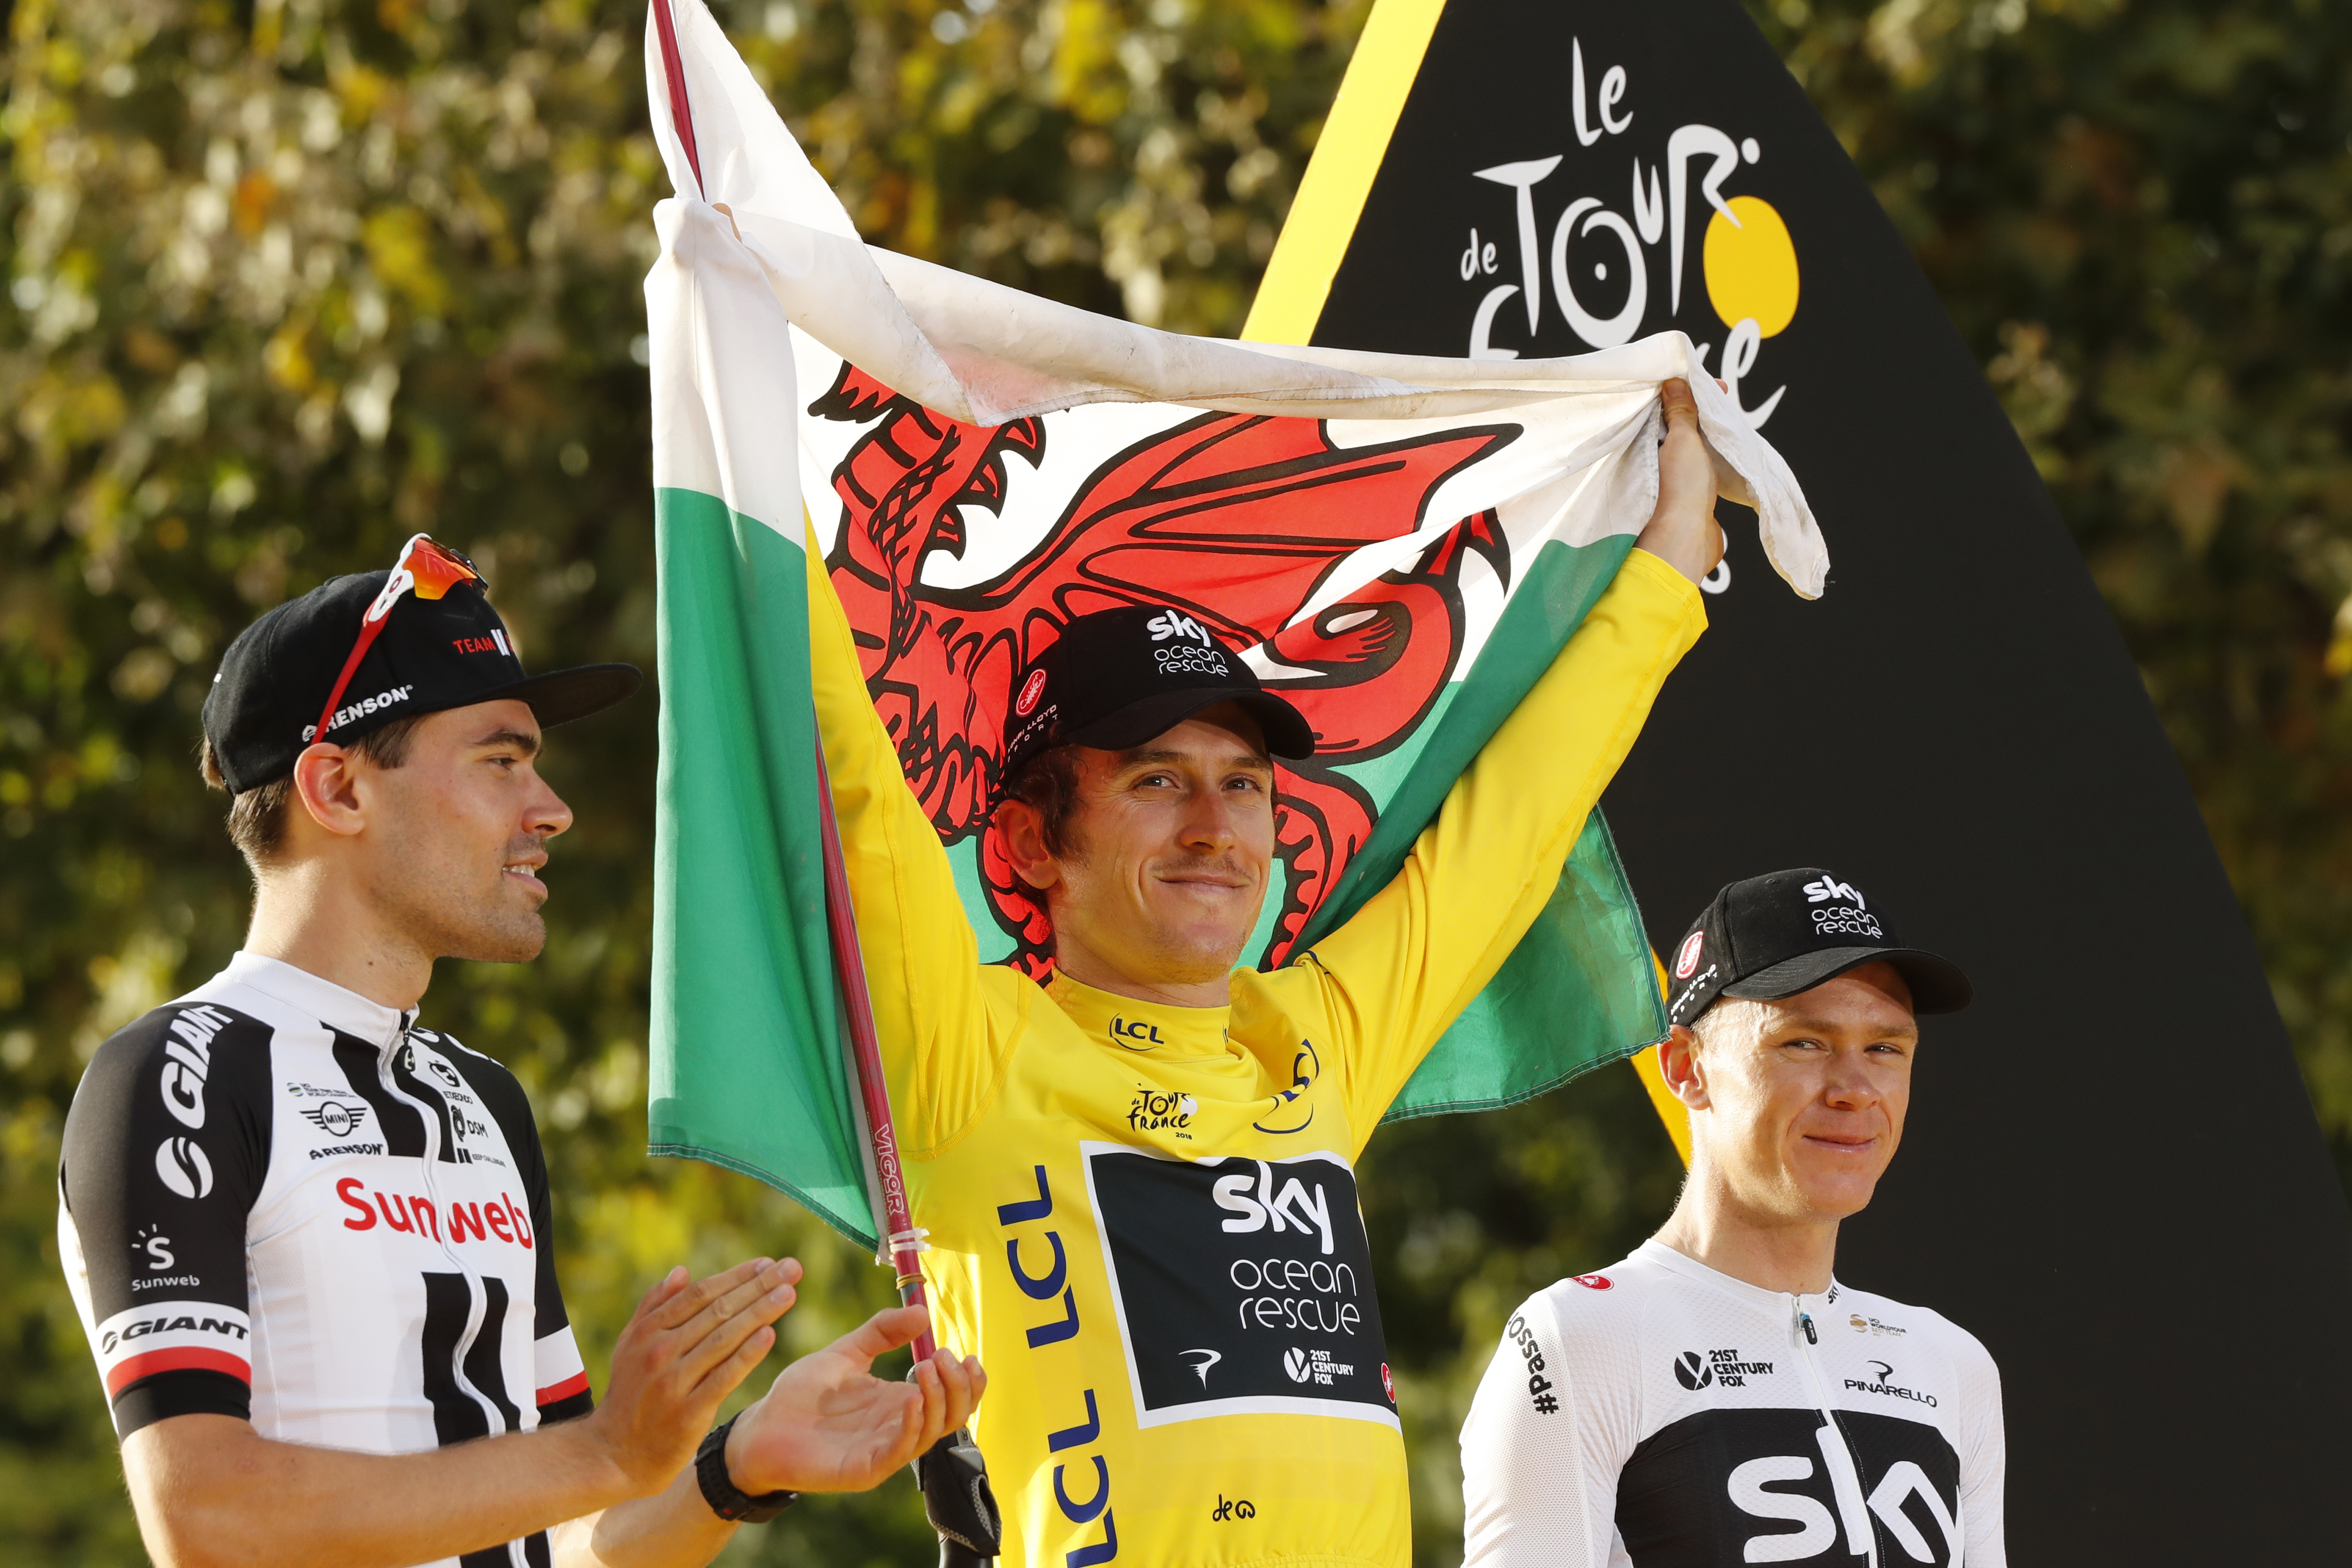 Britain´s Geraint Thomas (center) celebrates his Tour de France victory while wearing the overall leader´s yellow jersey and waving the Welsh flag on Sunday. The Netherlands´Tom Dumoulin (left) finished second; Britain´s Chris Froome (right) finished third.